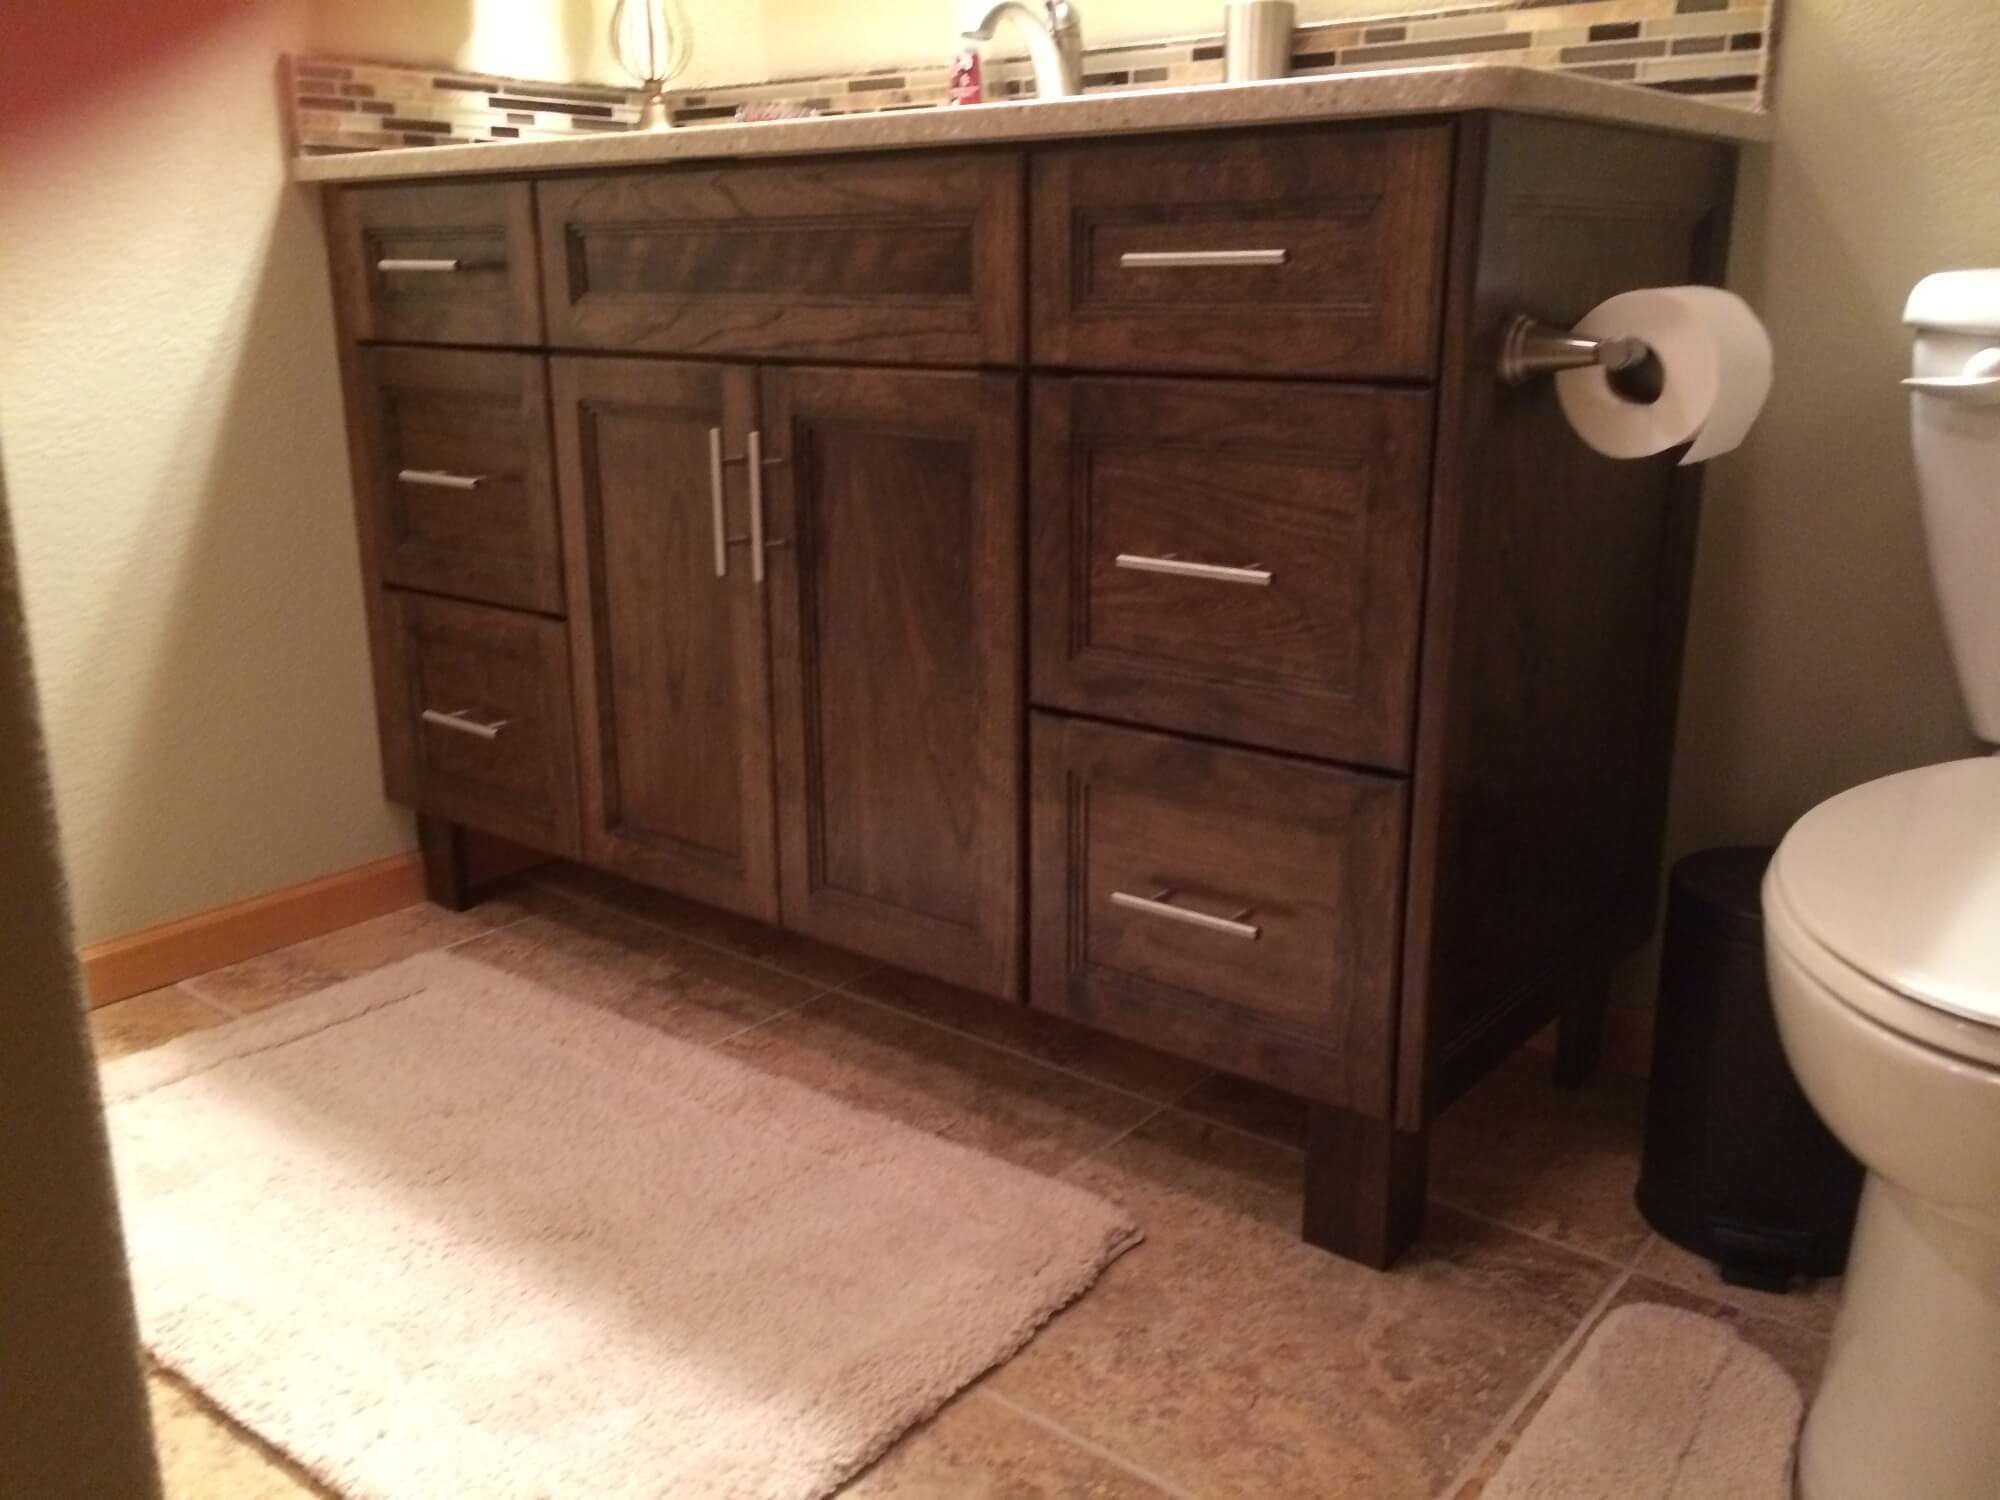 Cabinet with Sink in Bathroom